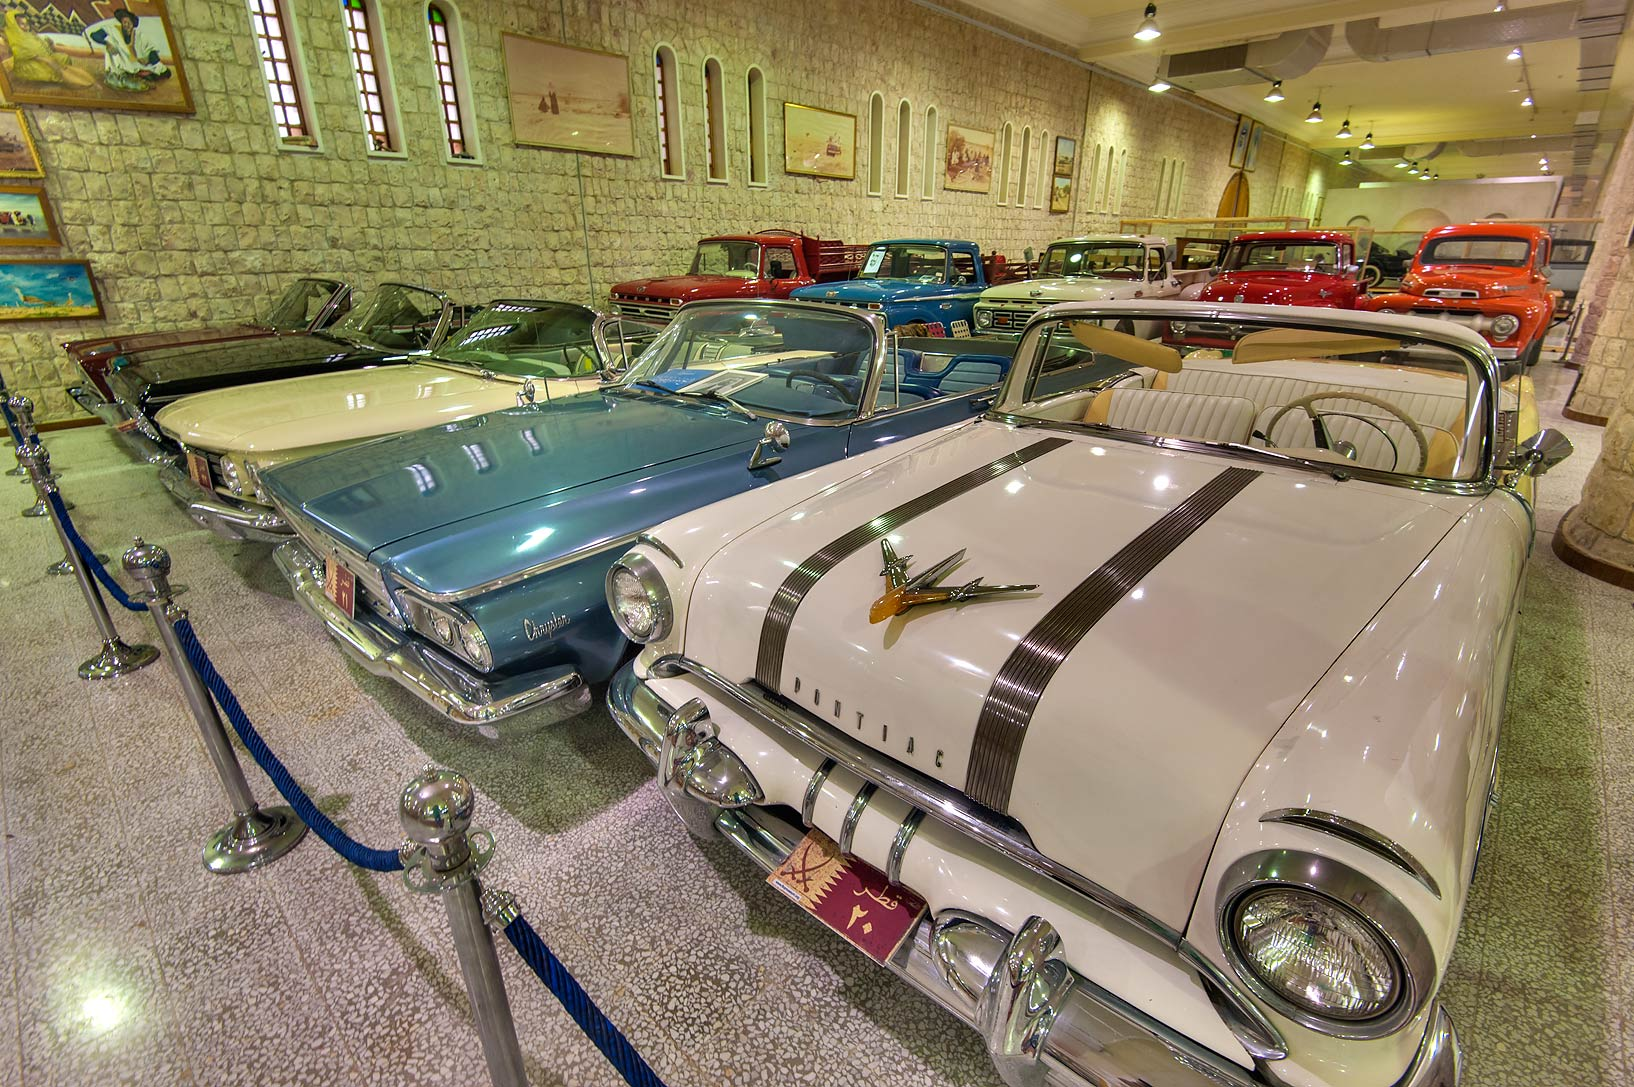 Chrysler and Pontiac cars in Sheikh Faisal Bin...Museum near Al-Shahaniya. Doha, Qatar